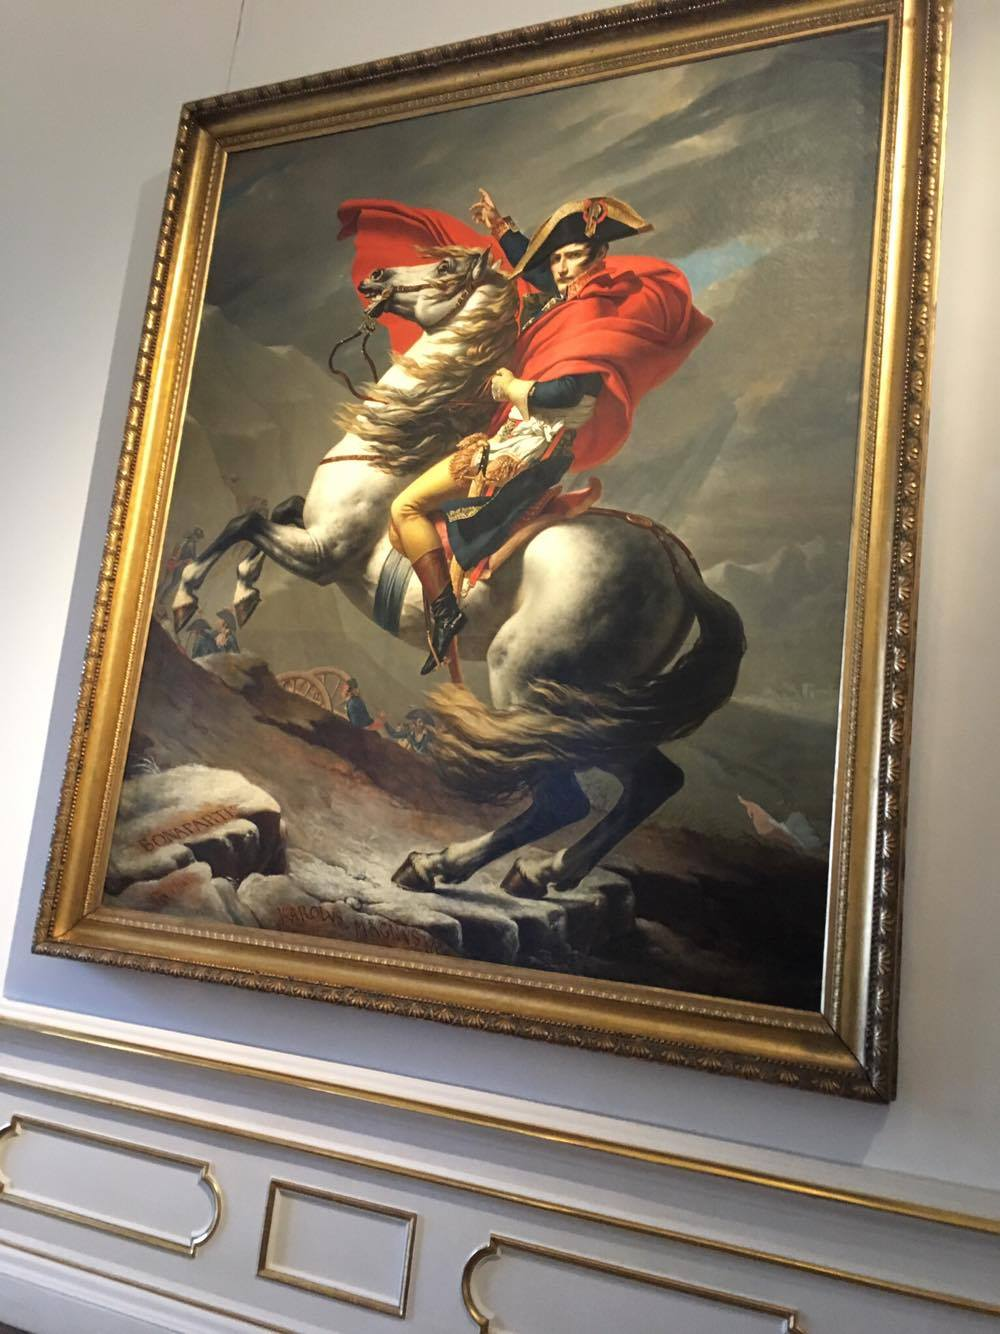 Napoleon Crossing the Alps, by Jacques-Louis David.